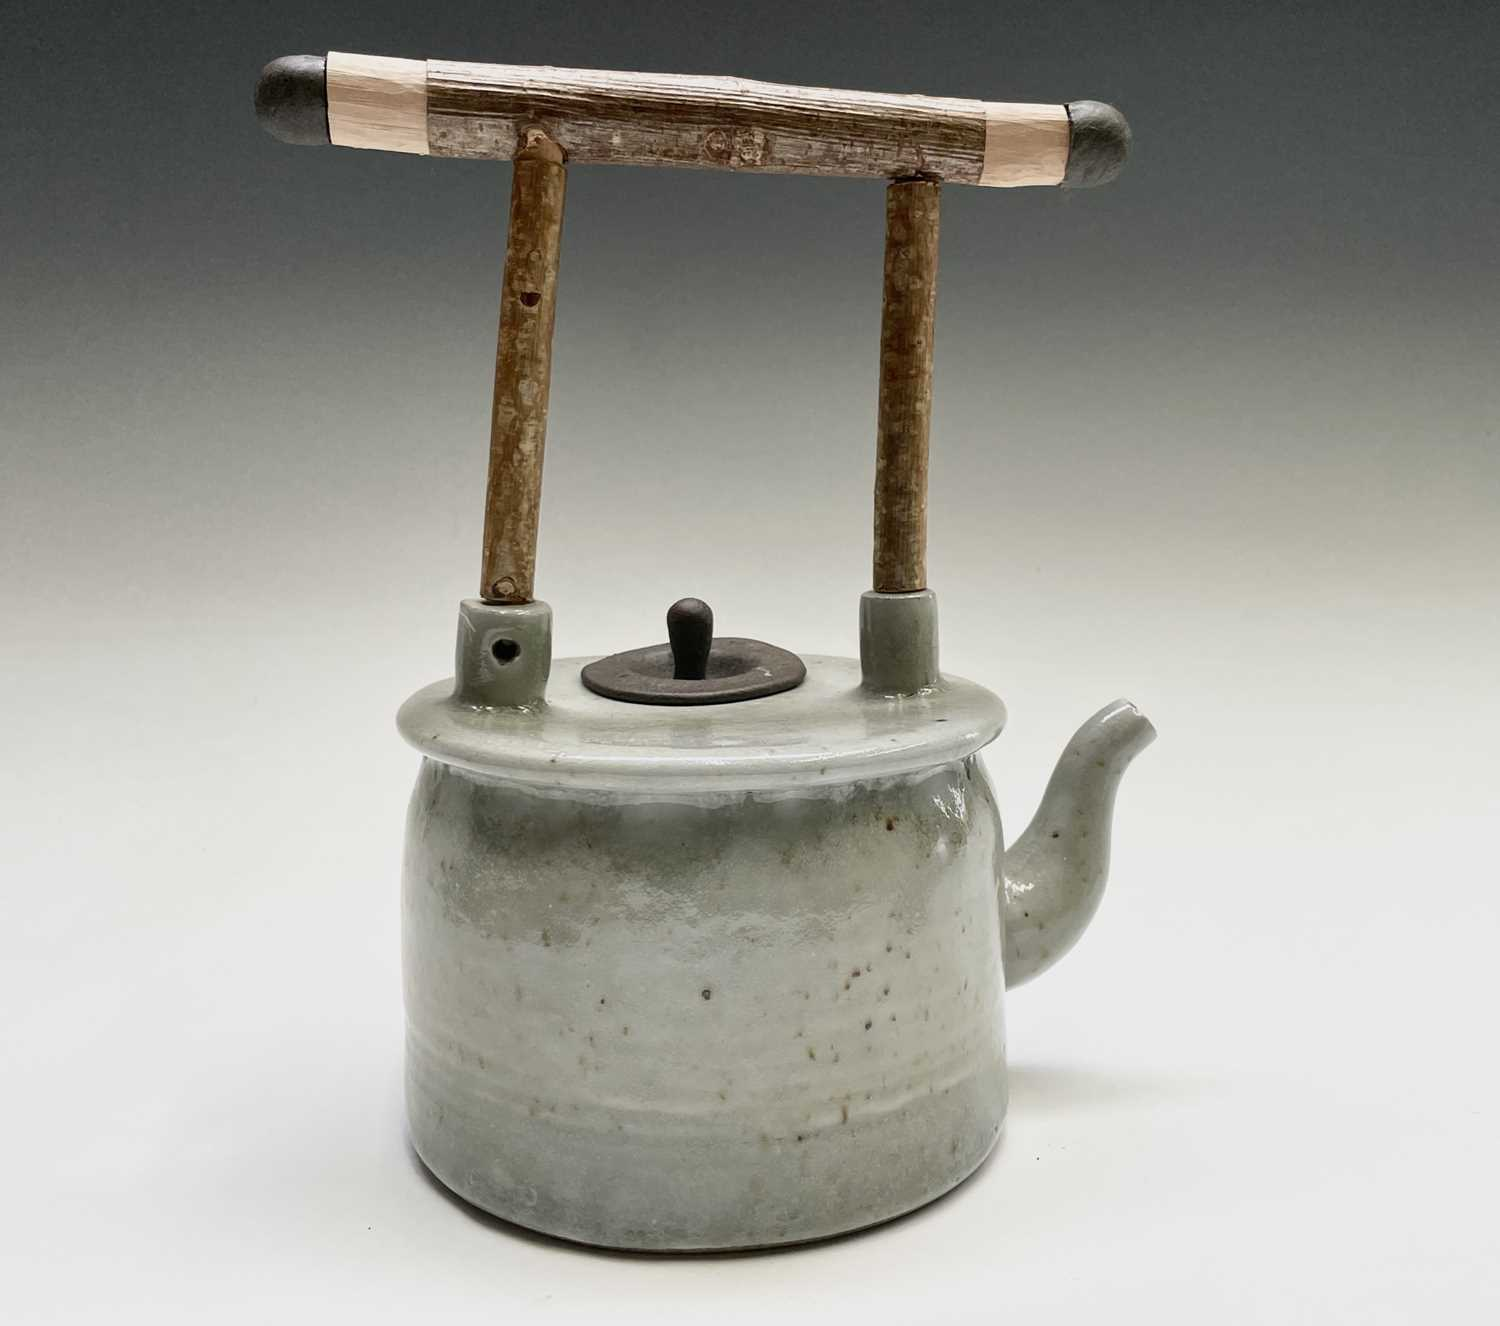 Roger MICHELL (1947-2018)A celadon glazed teapotImpressed makers mark to base, signed in pen and